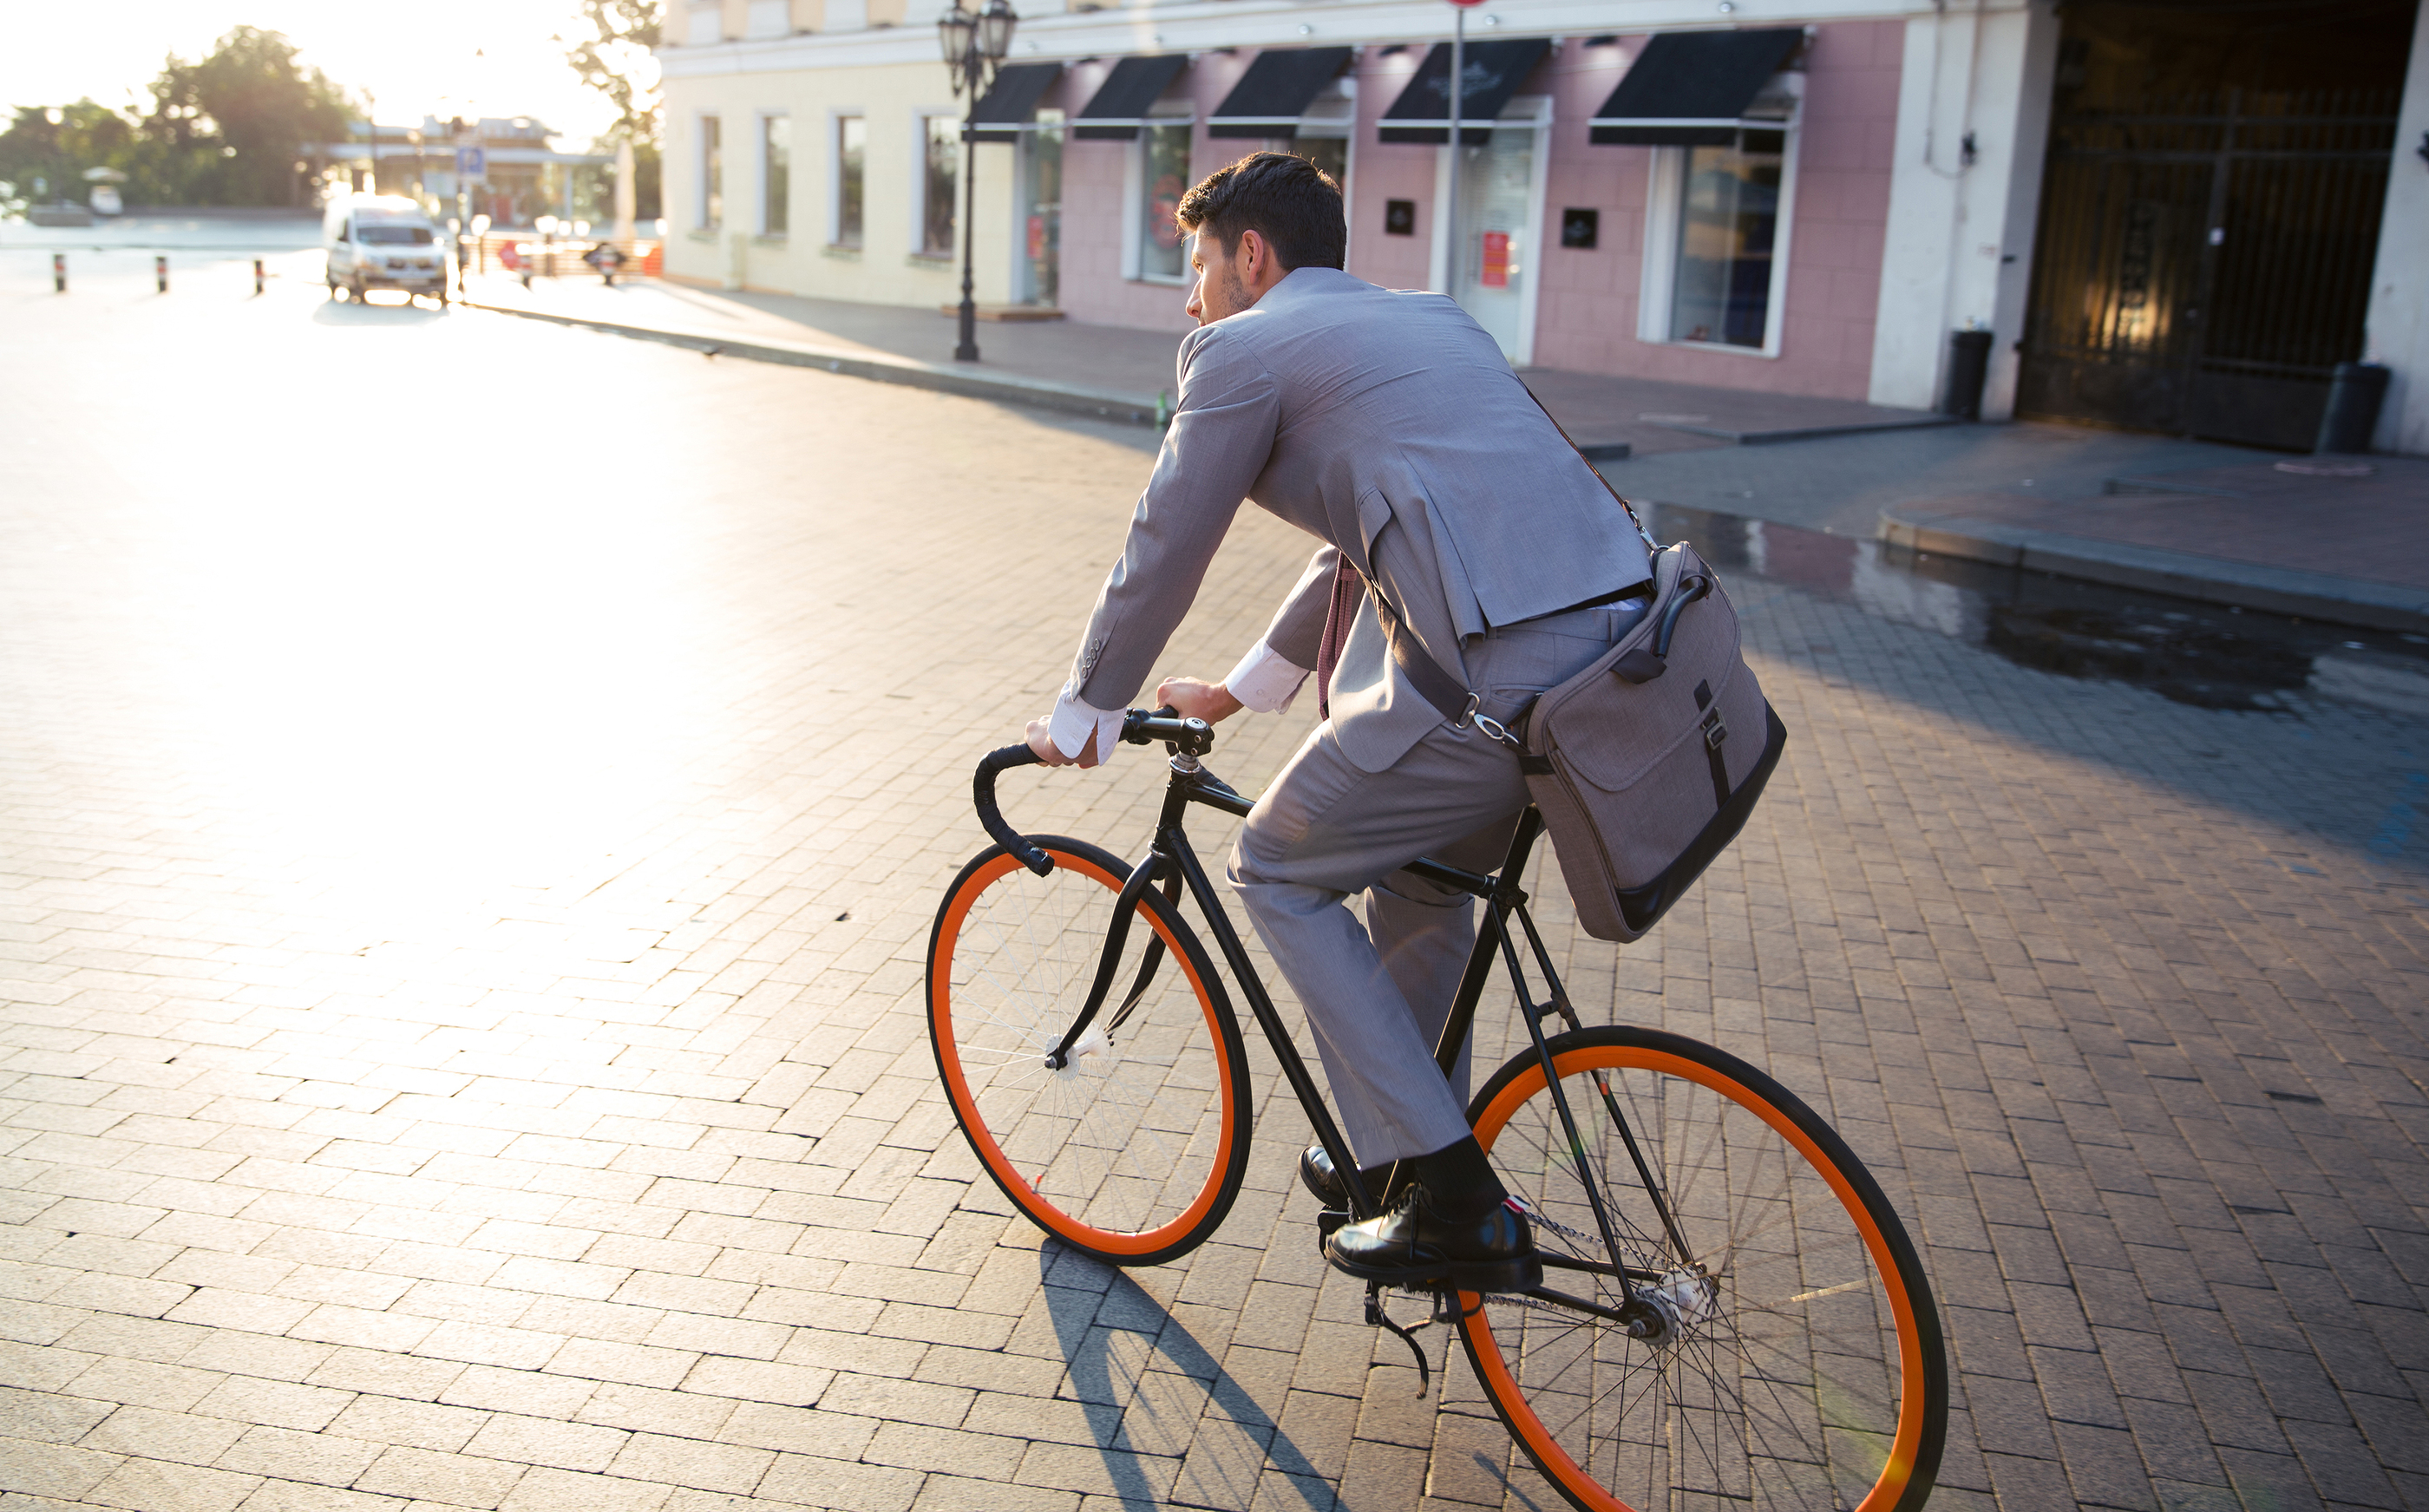 Caucasian man wearing a grey suite riding a black bicycle